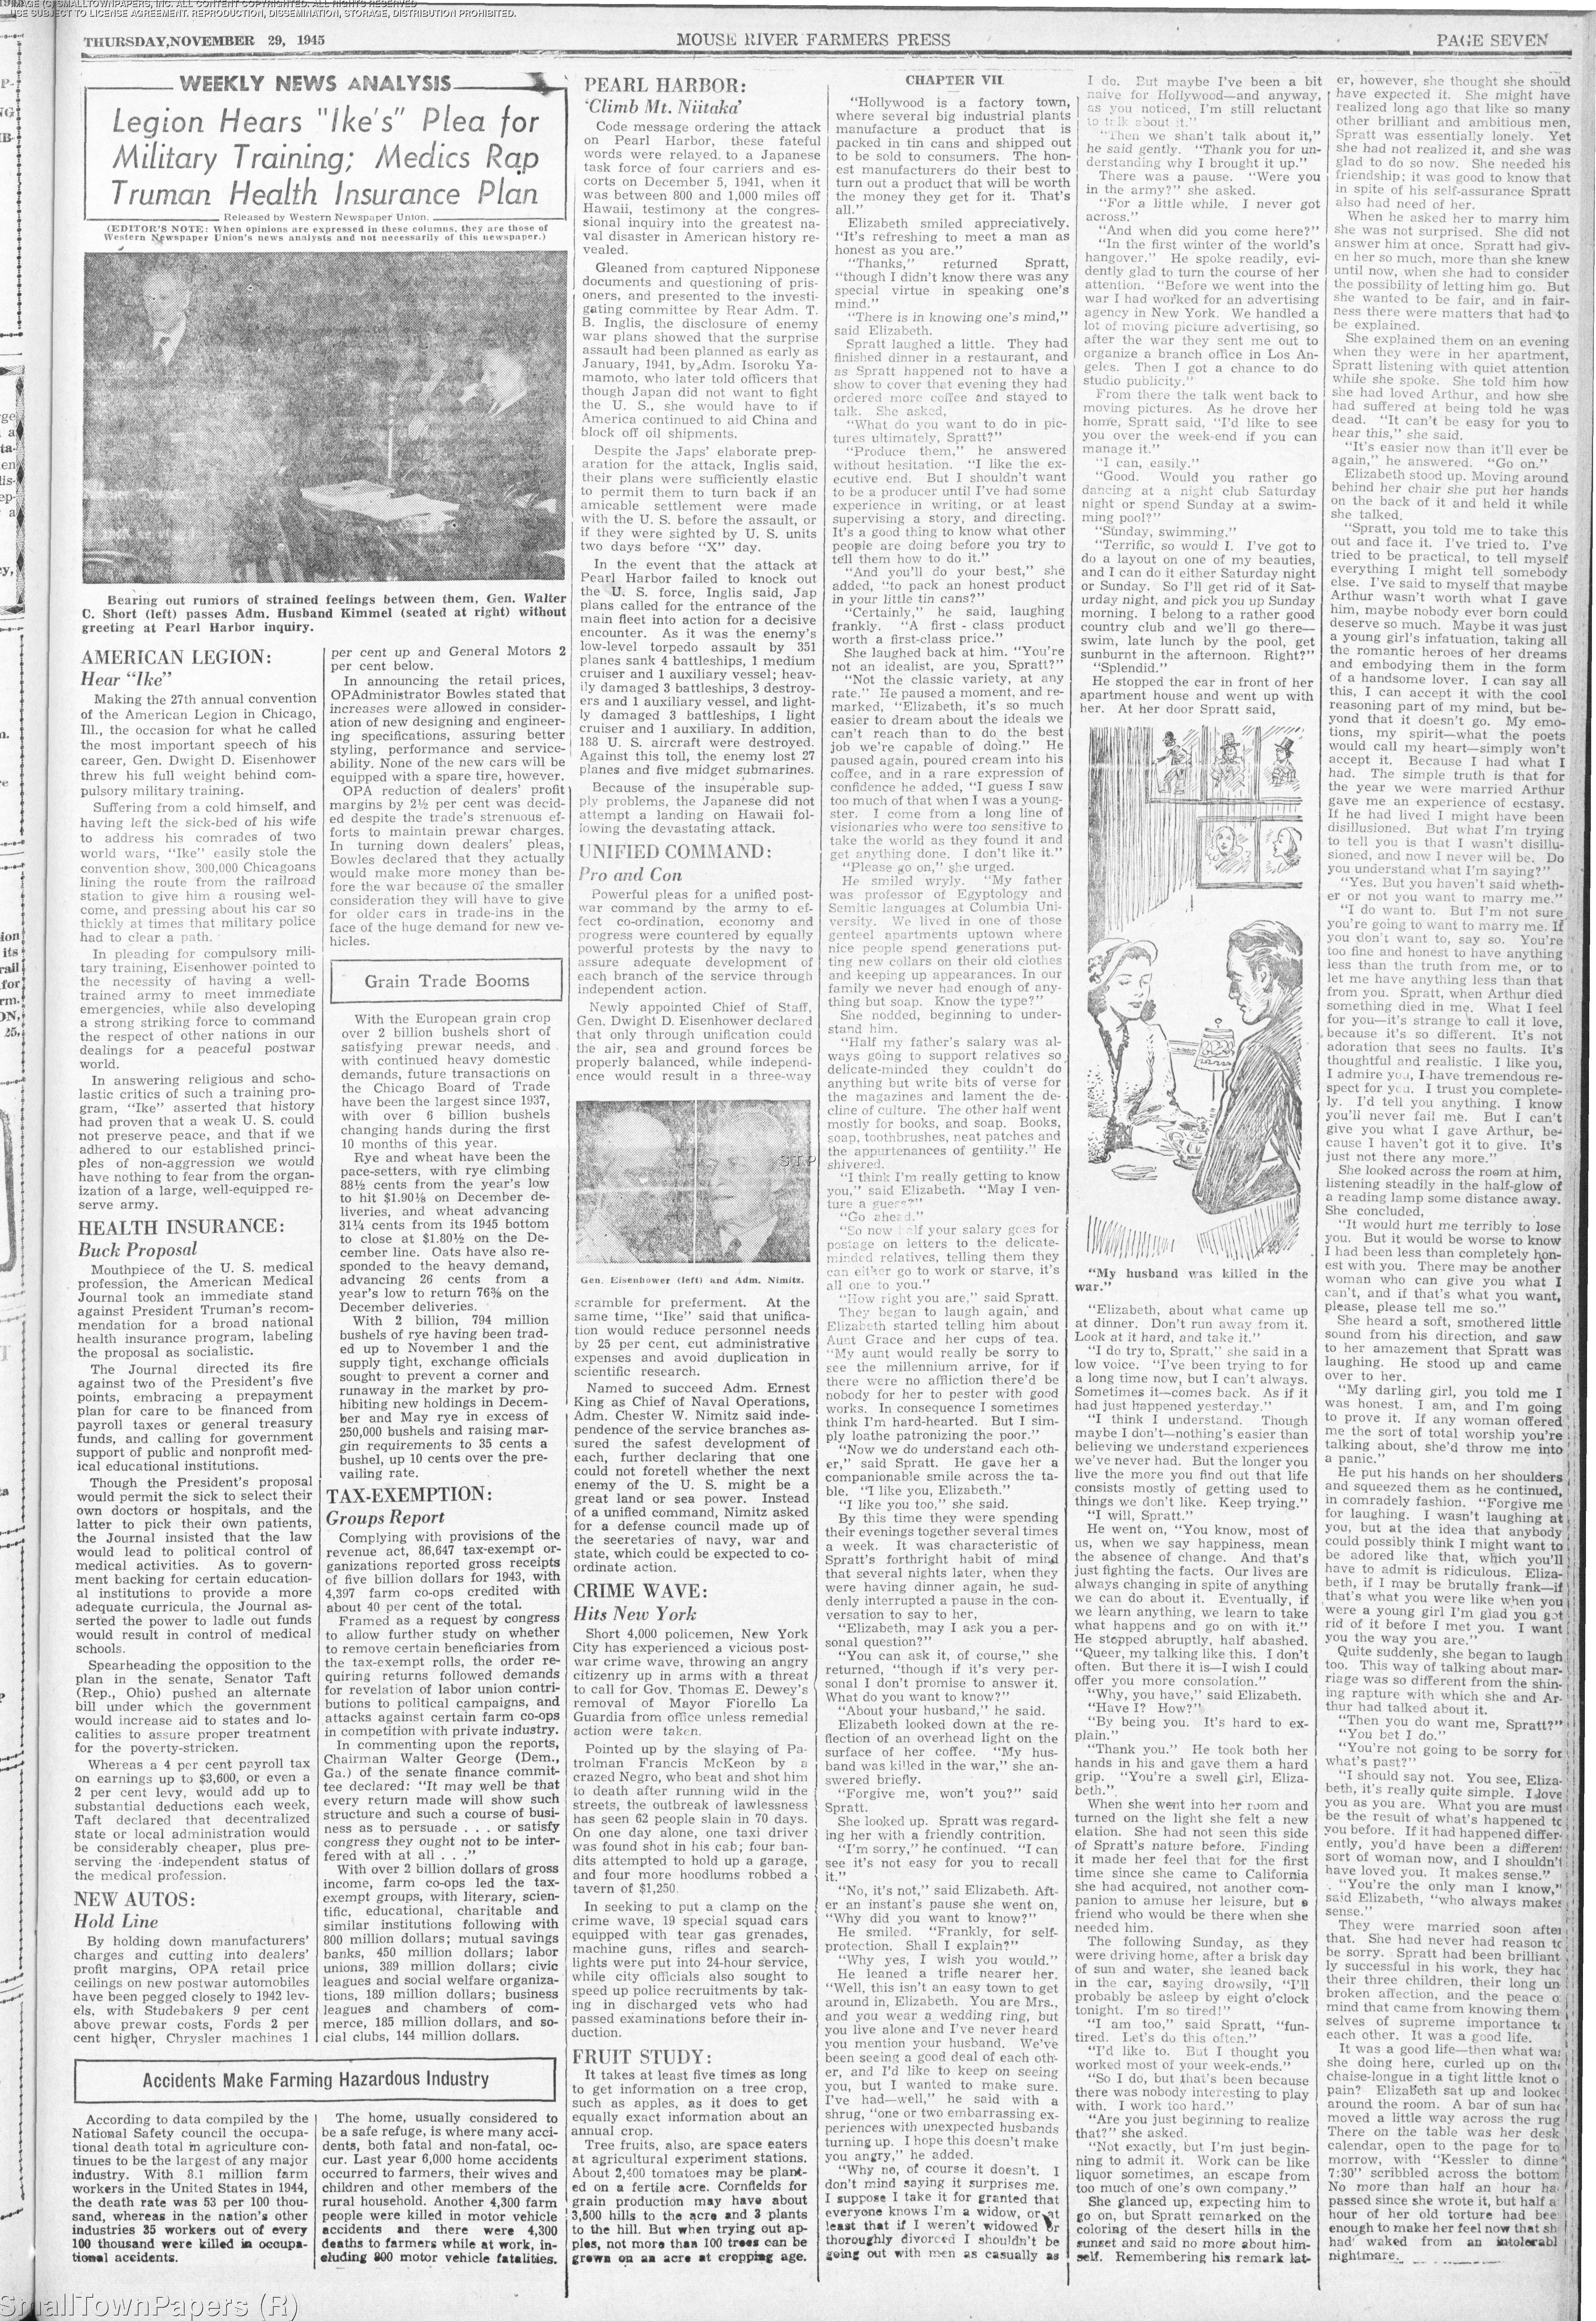 Mouse River Journal November 29, 1945: Page 7